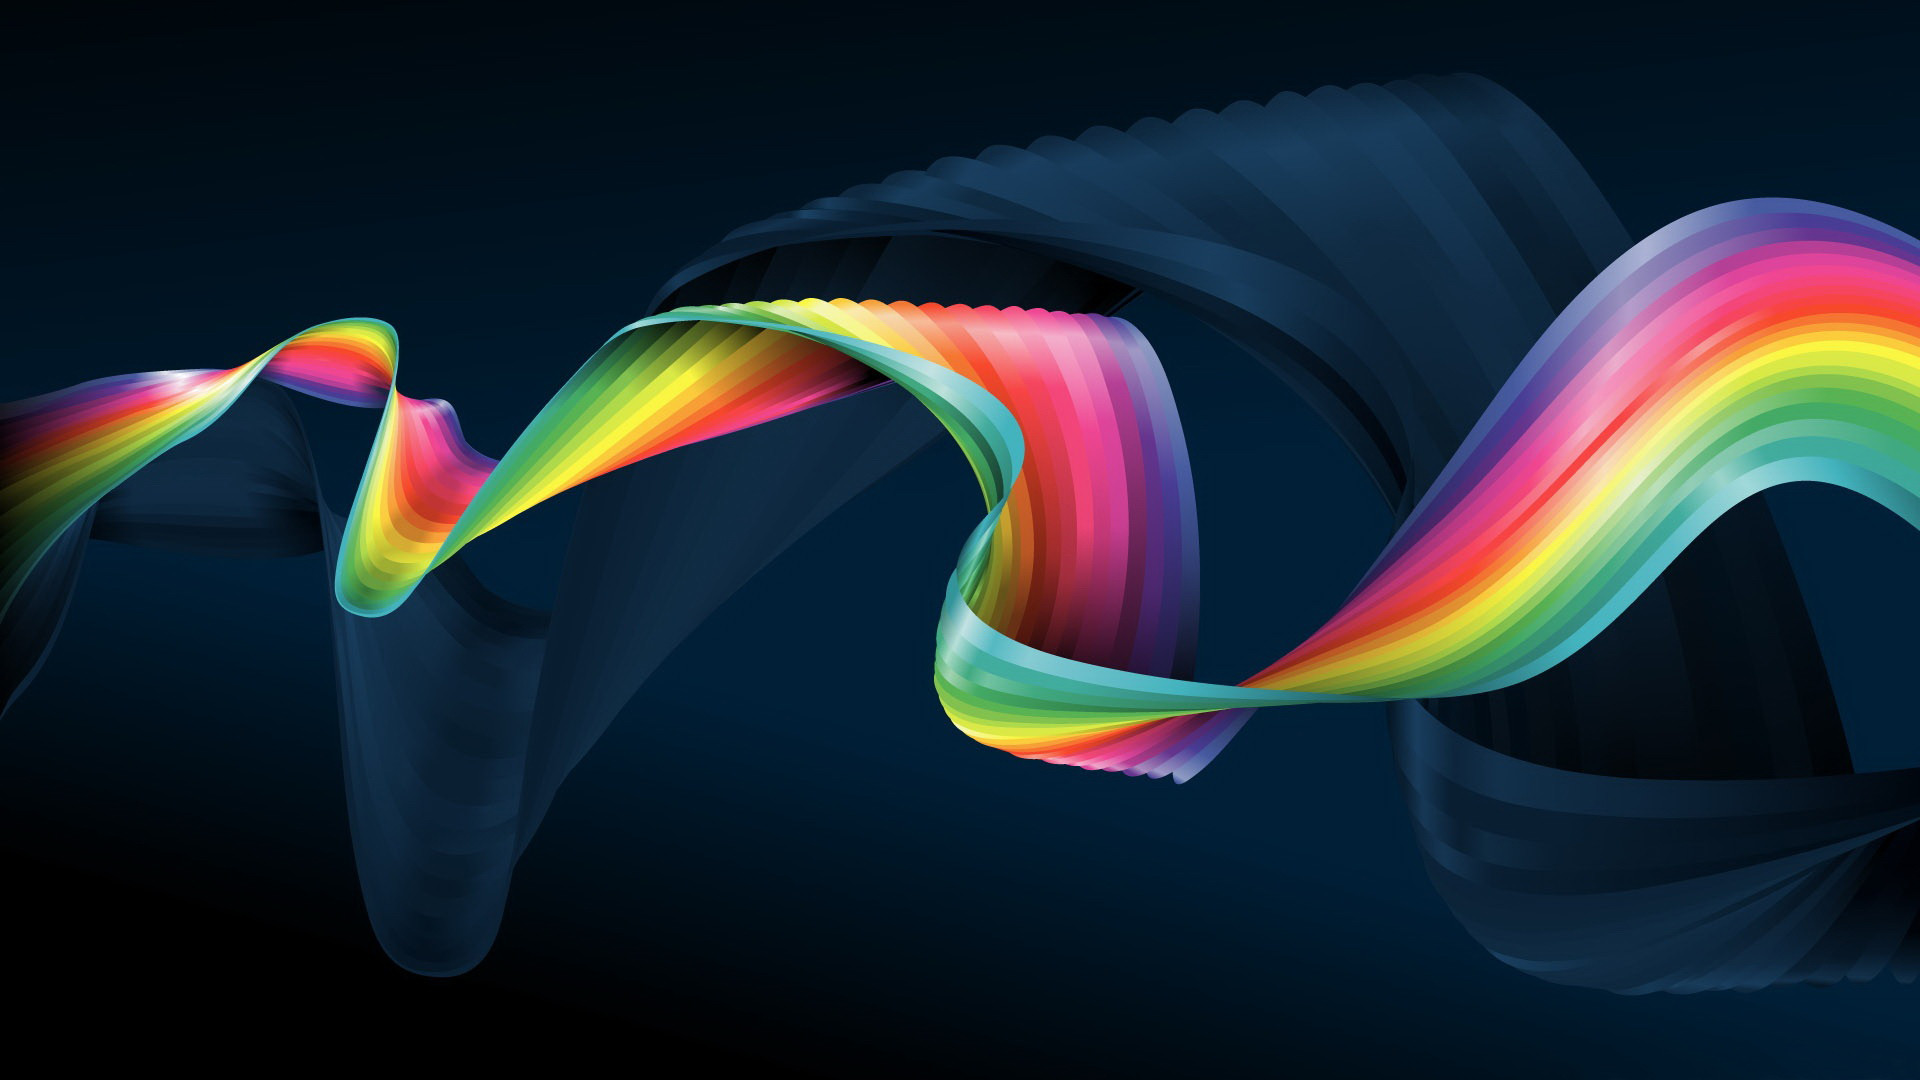 1920x1080 abstract-rainbow-pictures-to-color-hd-desktop-wallpaper-